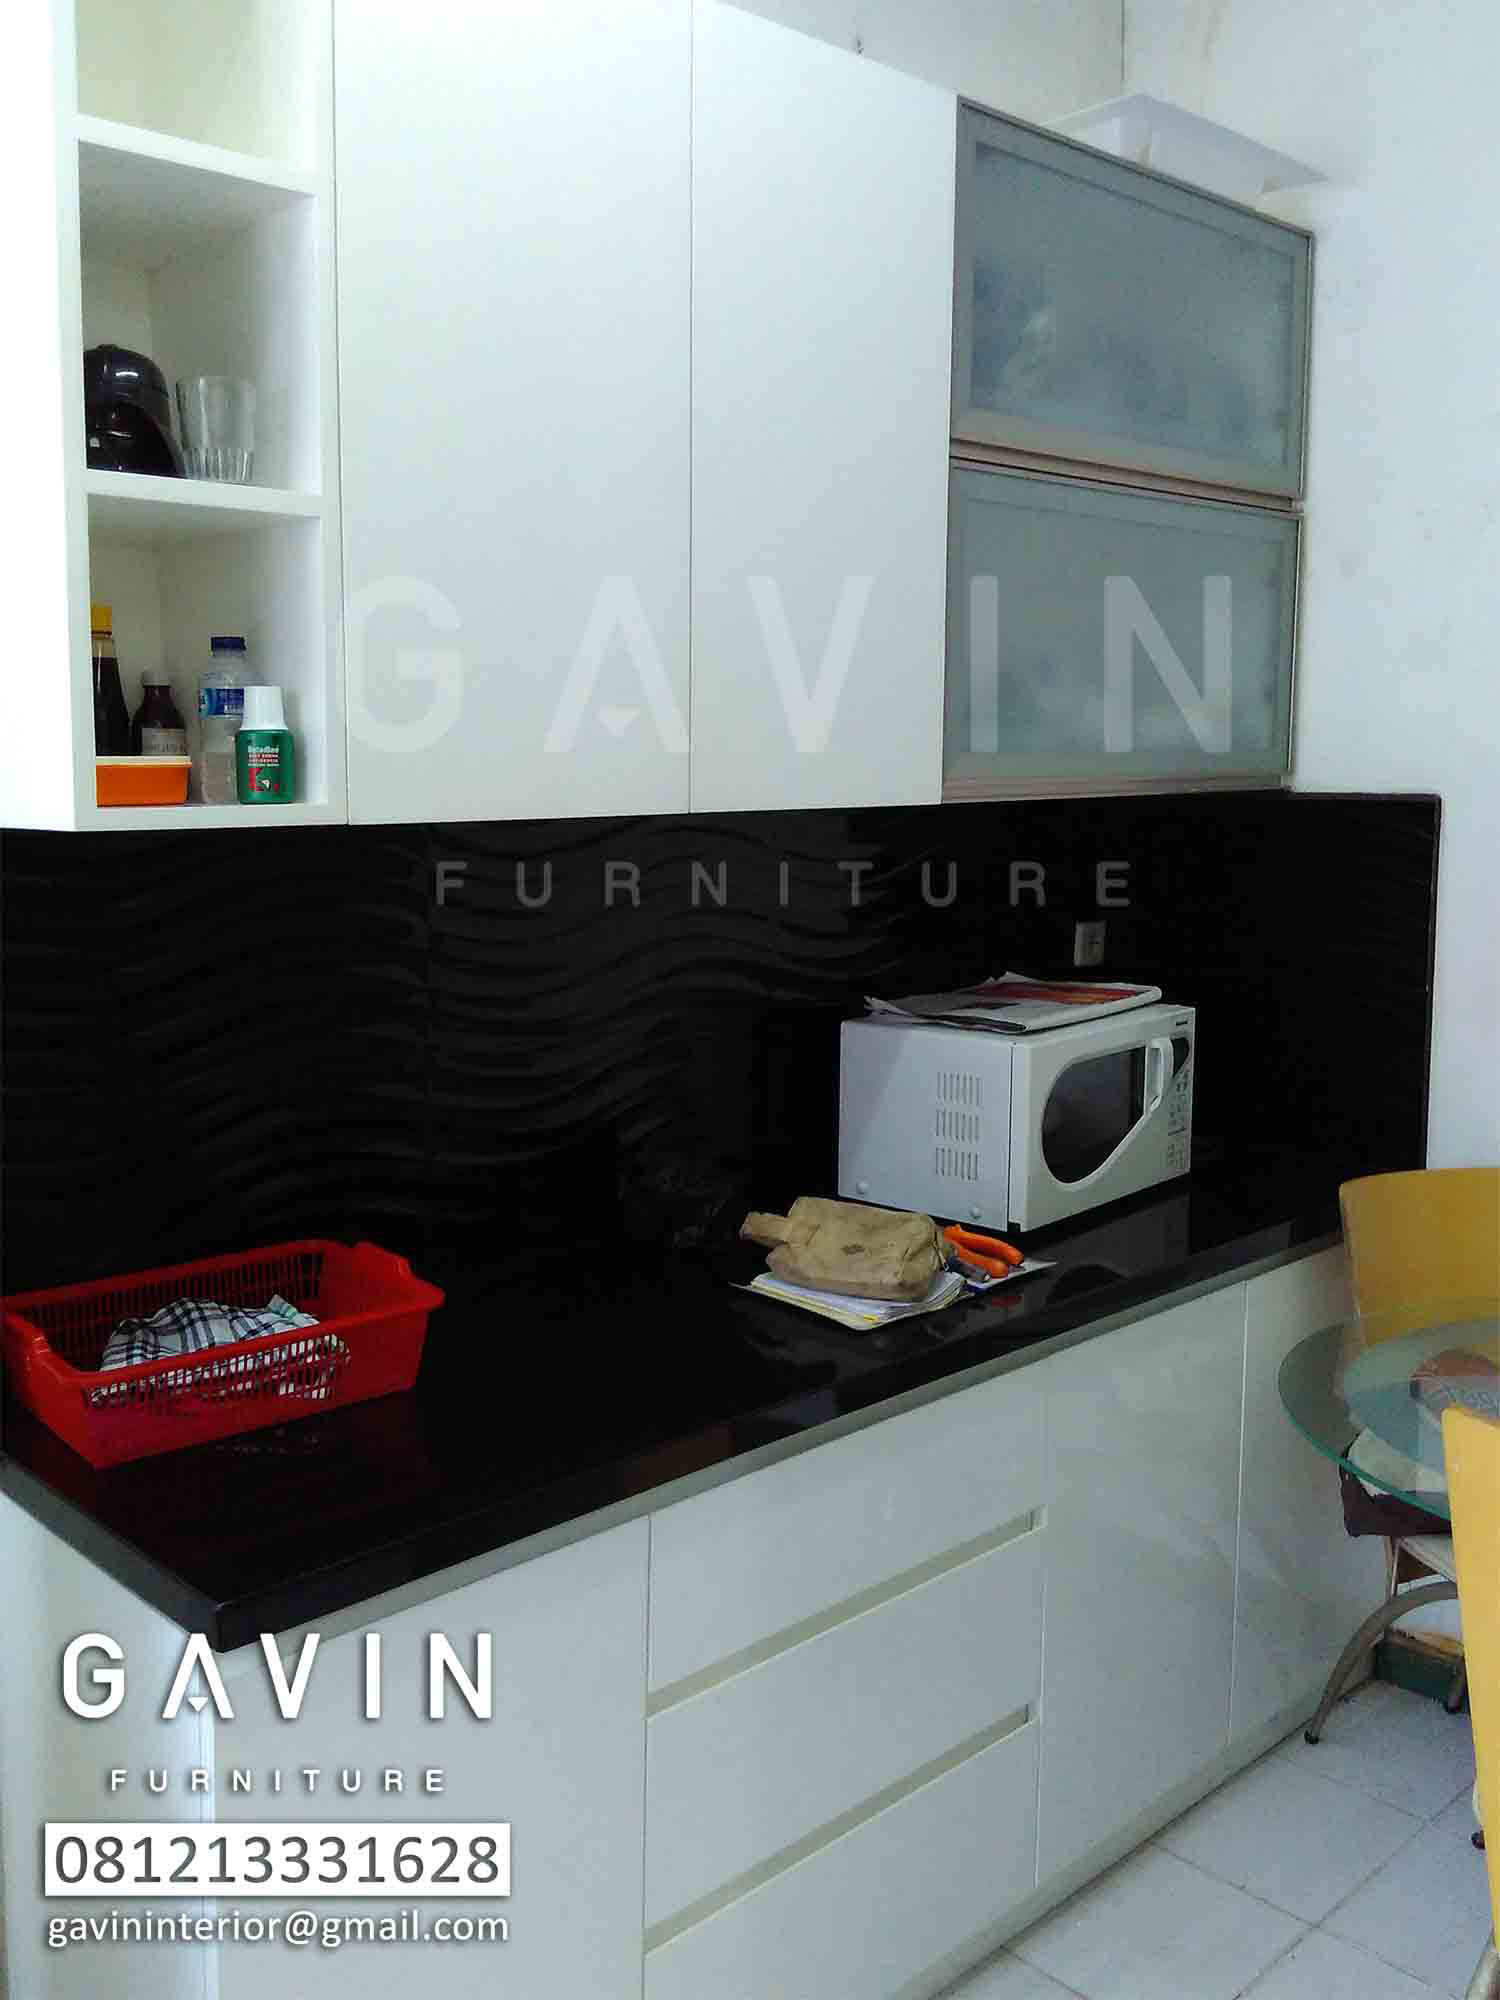 Daftar harga kitchen set minimalis murah kitchen set for Harga kitchen set murah